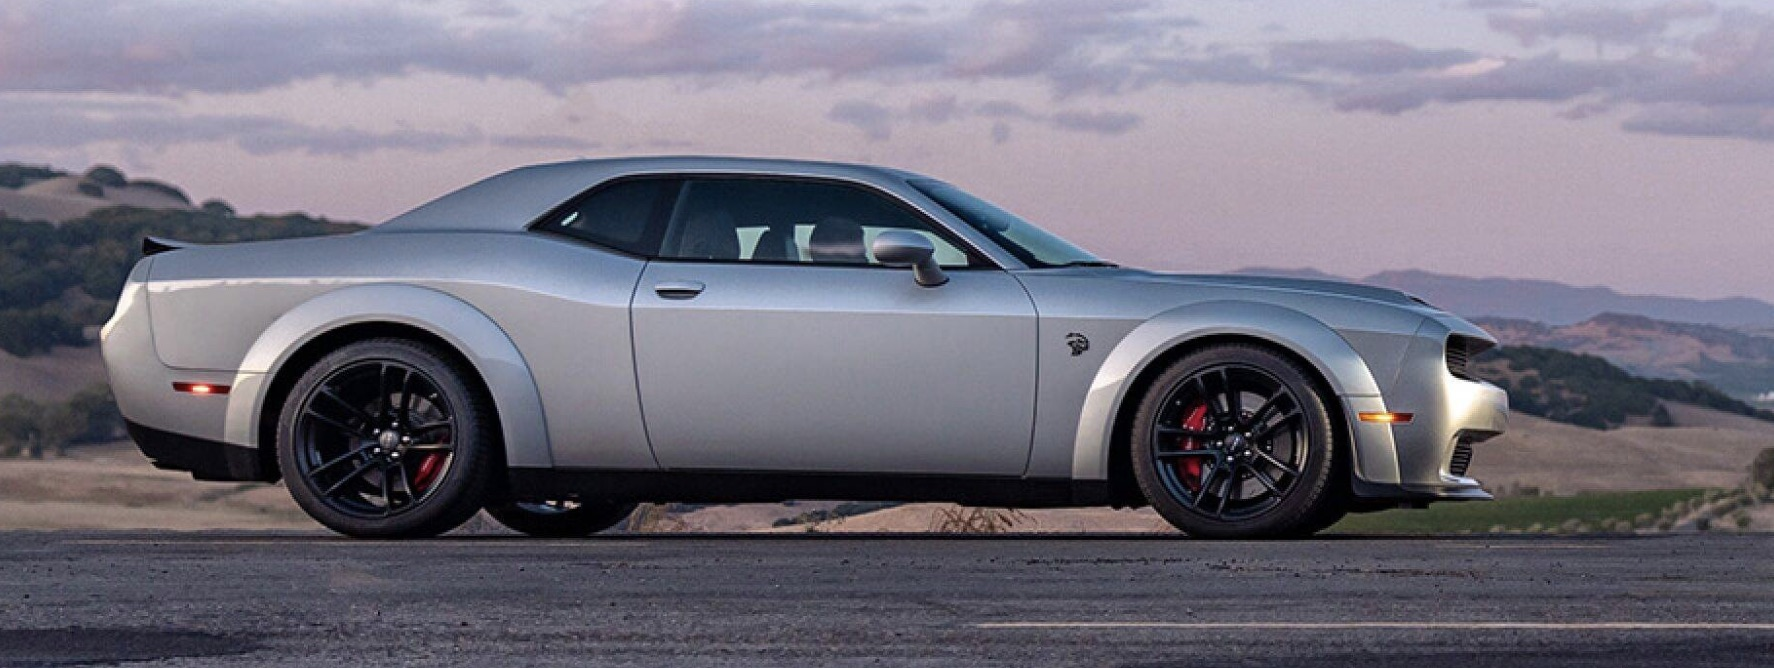 What S New On The 2020 Dodge Challenger Configuration And Performance Review